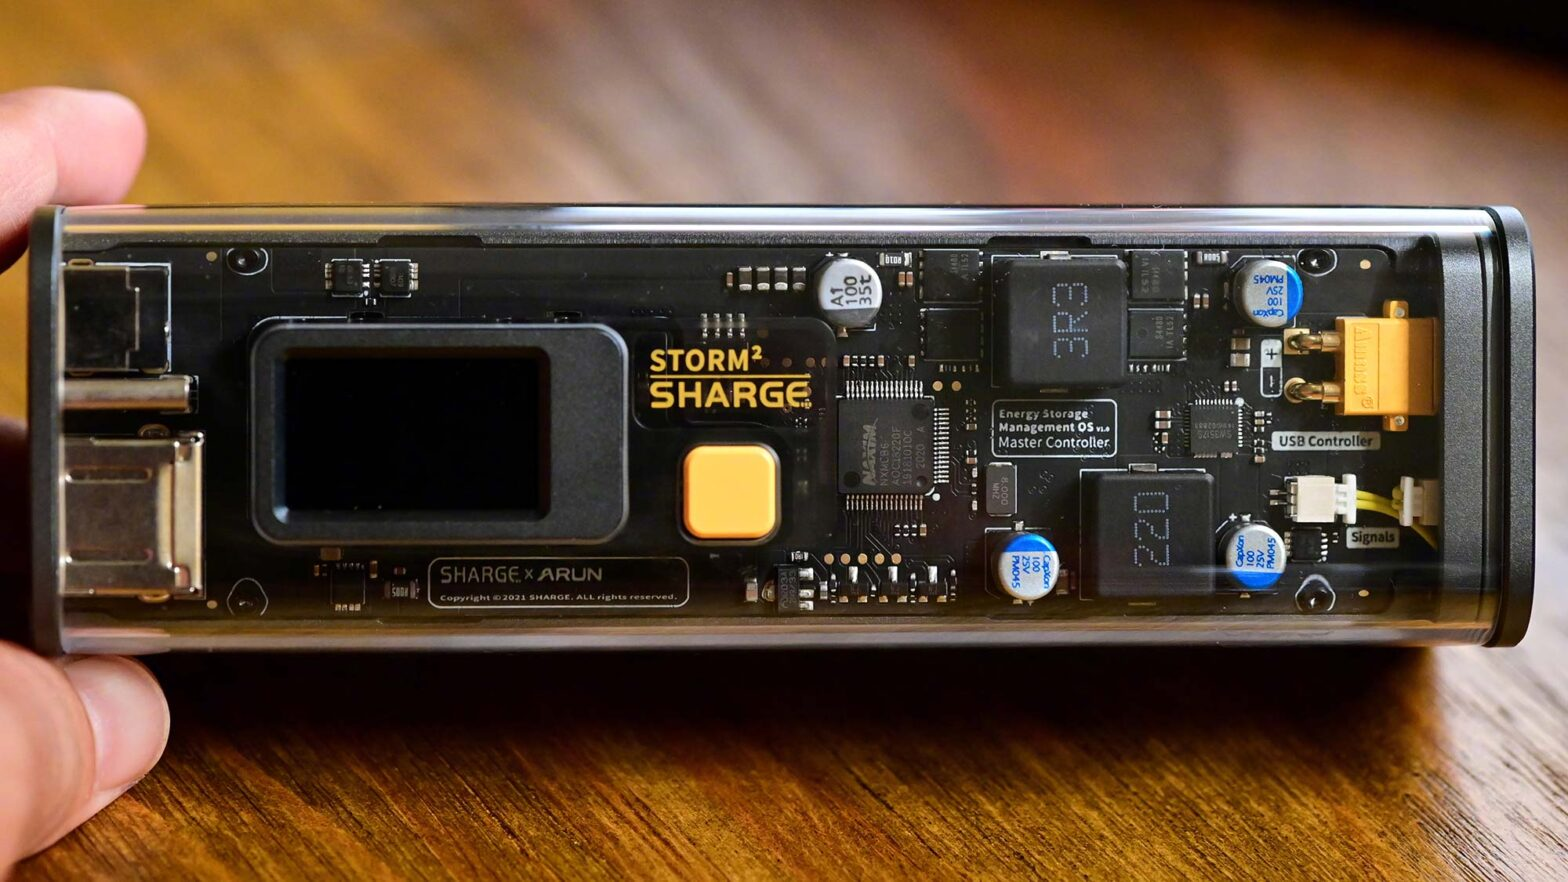 Sharge 100 W Transparent Power Bank